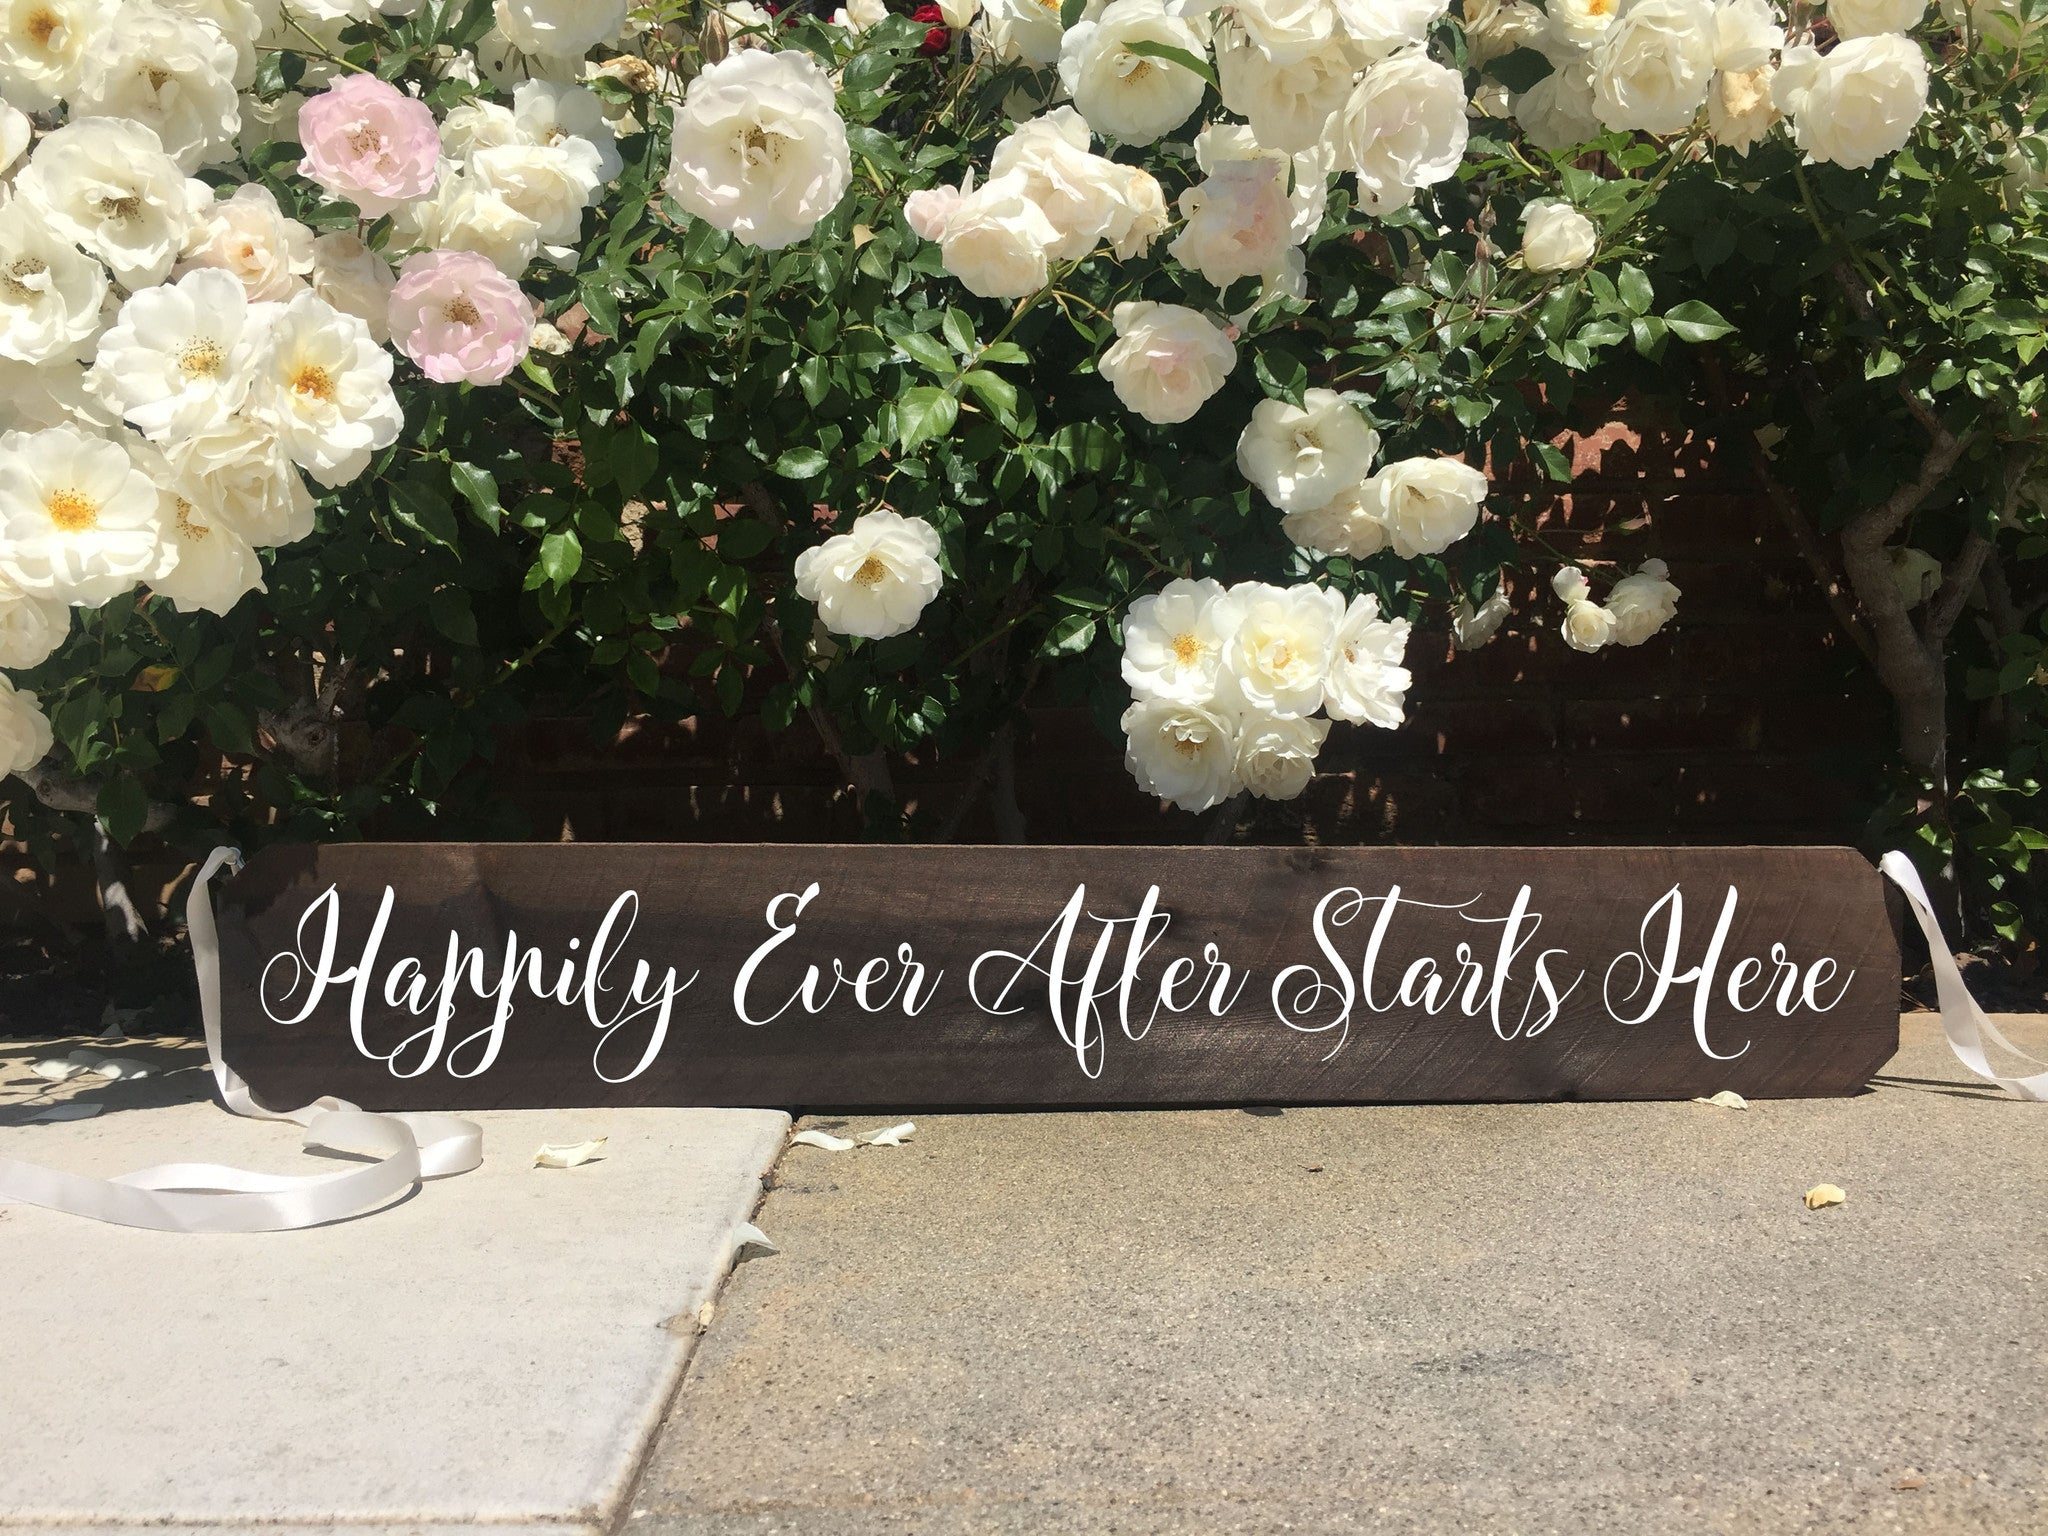 Wedding aisle sign rustic wedding sign happily ever after starts wedding aisle sign rustic wedding sign happily ever after starts here ceremony aisle rustic wedding junglespirit Choice Image